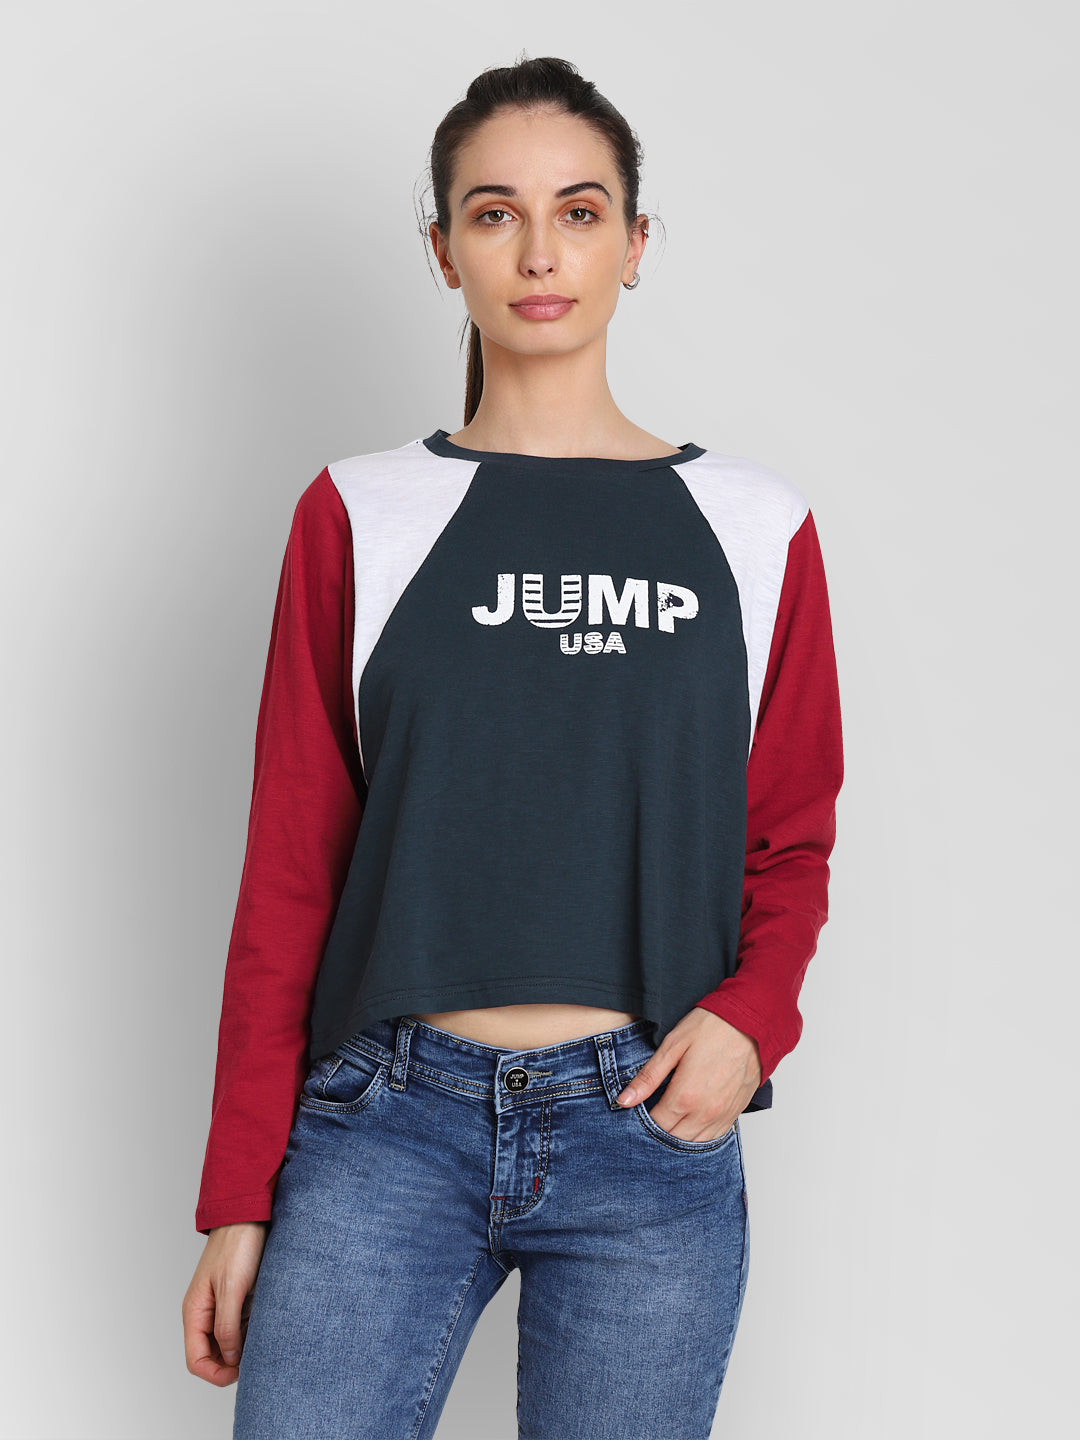 JUMP USA Women Navy Blue Self Design Crop Top - JUMP USA